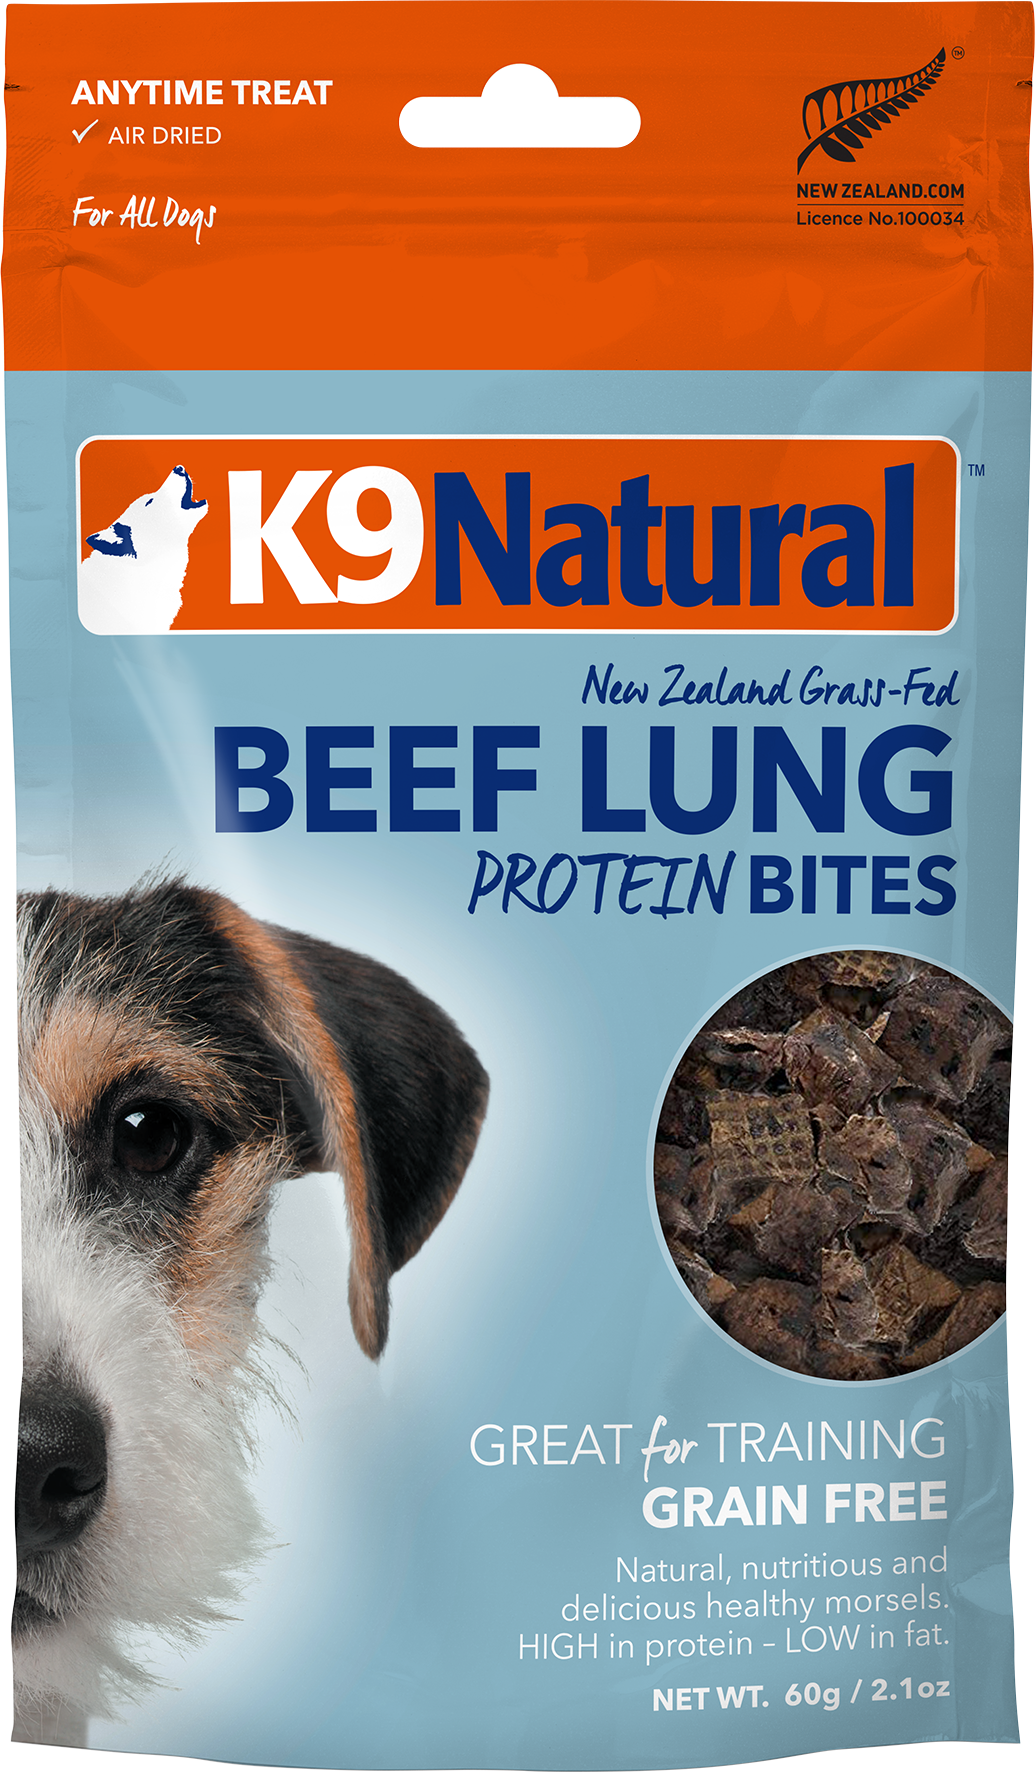 K9 Natural K9 Natural Freeze Dried Beef Lung Protein Bites 2.1oz